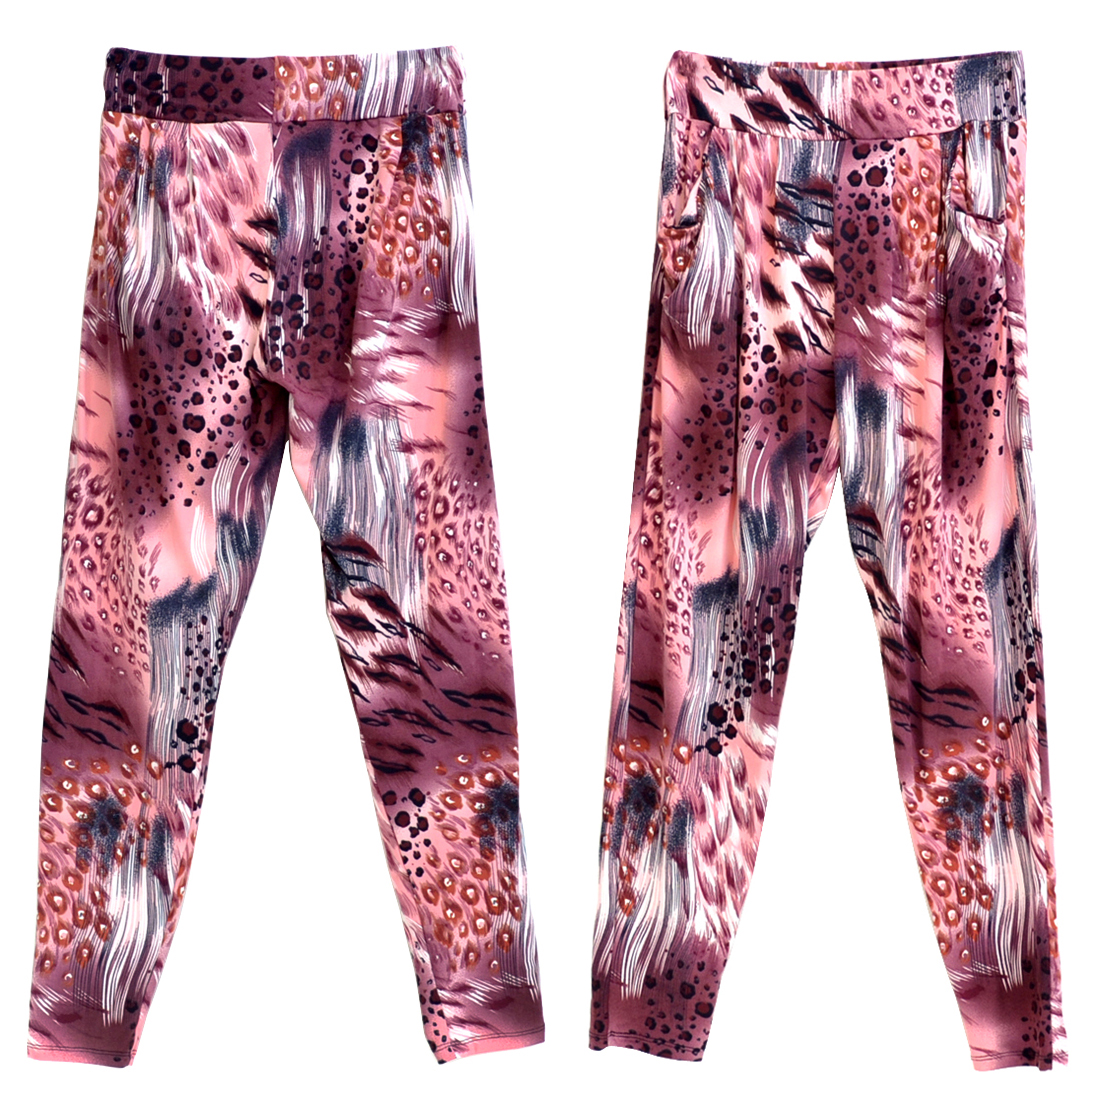 Feathered Leopard Print Harem Style Jogger Pants